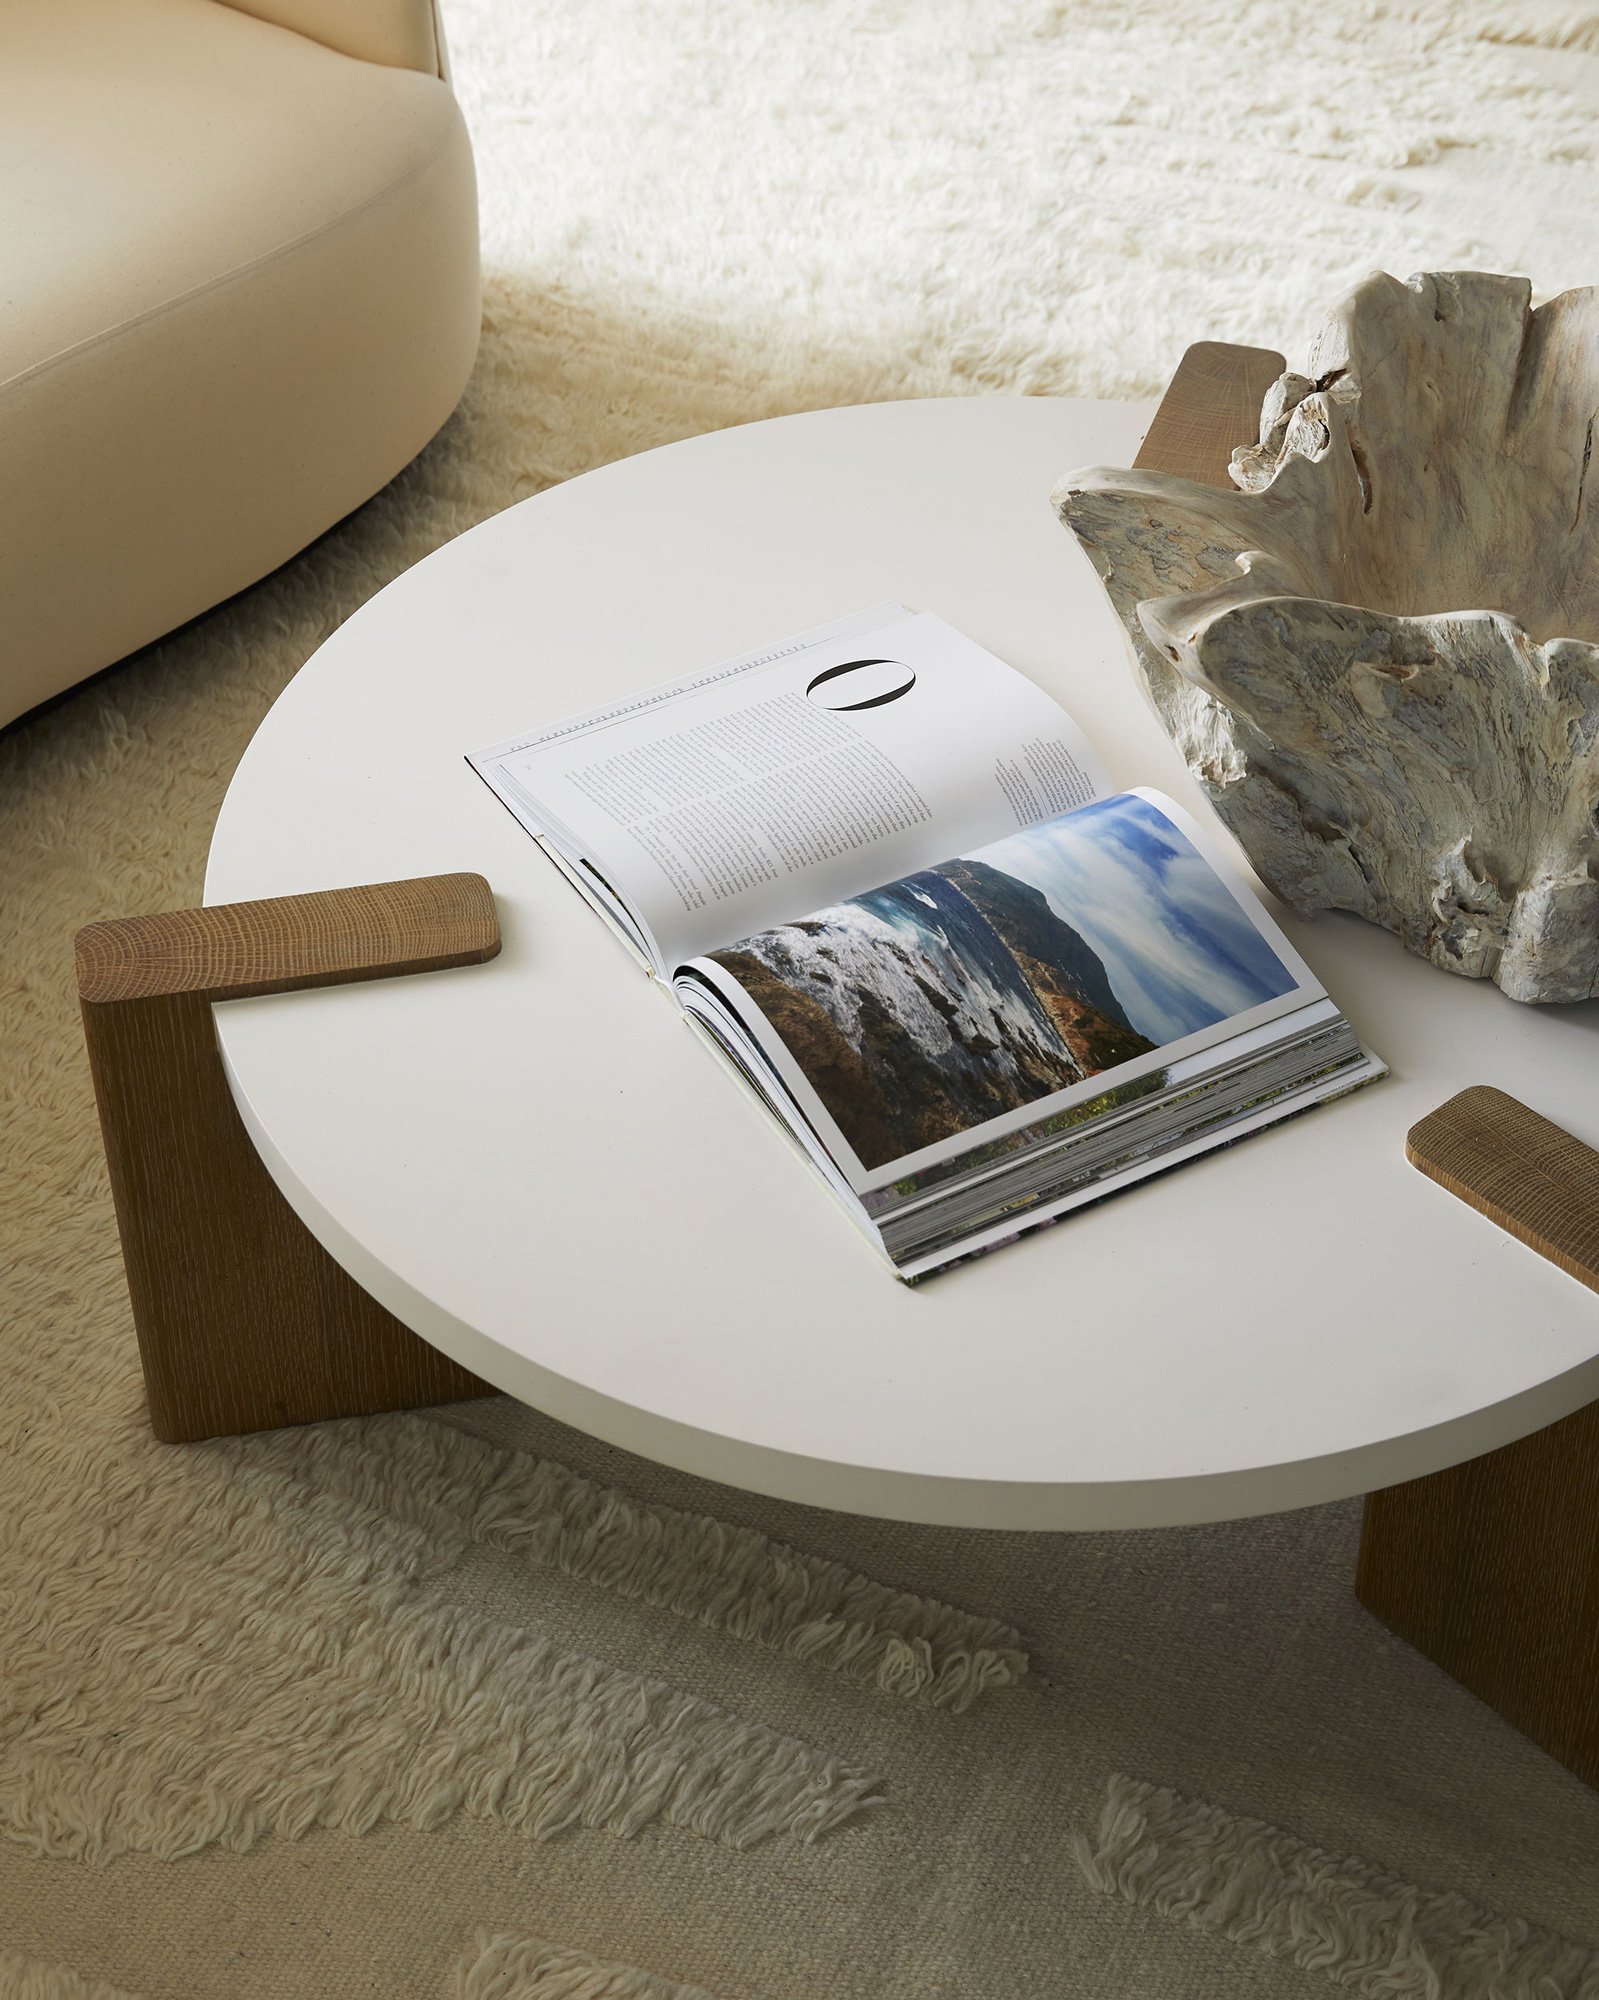 white-and-brown-coffee-table-unique-scandinavian-living-room-furniture-for-sale-online-thick-oak-legs-modern-design